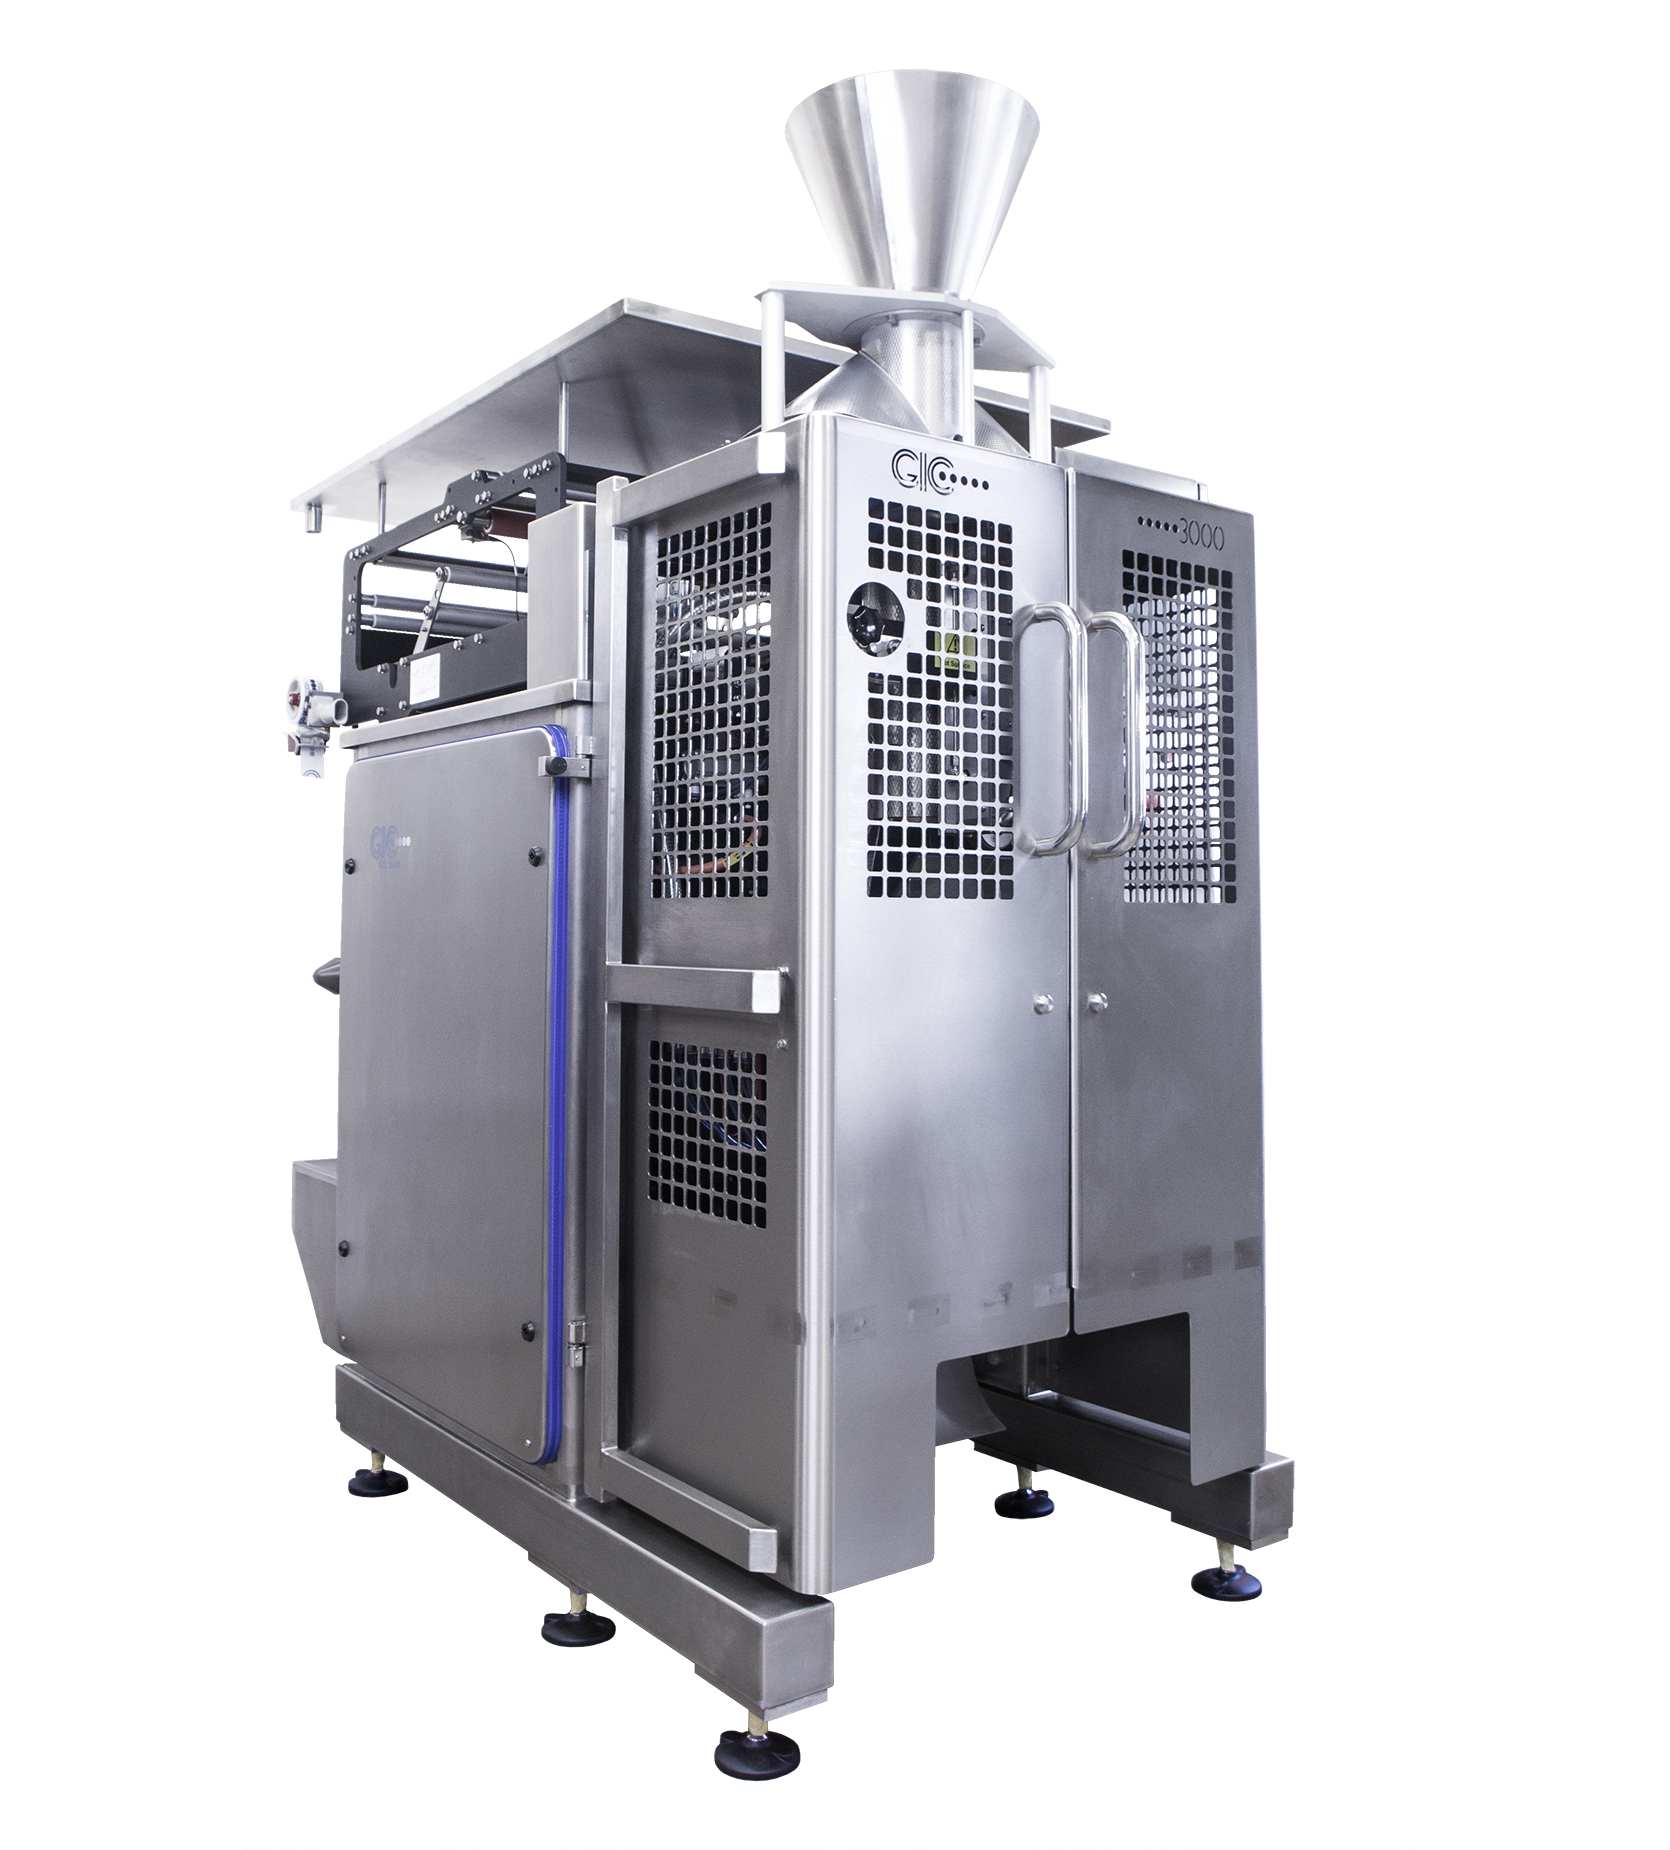 gic 3000 vffs bagging machine uk manufacturer